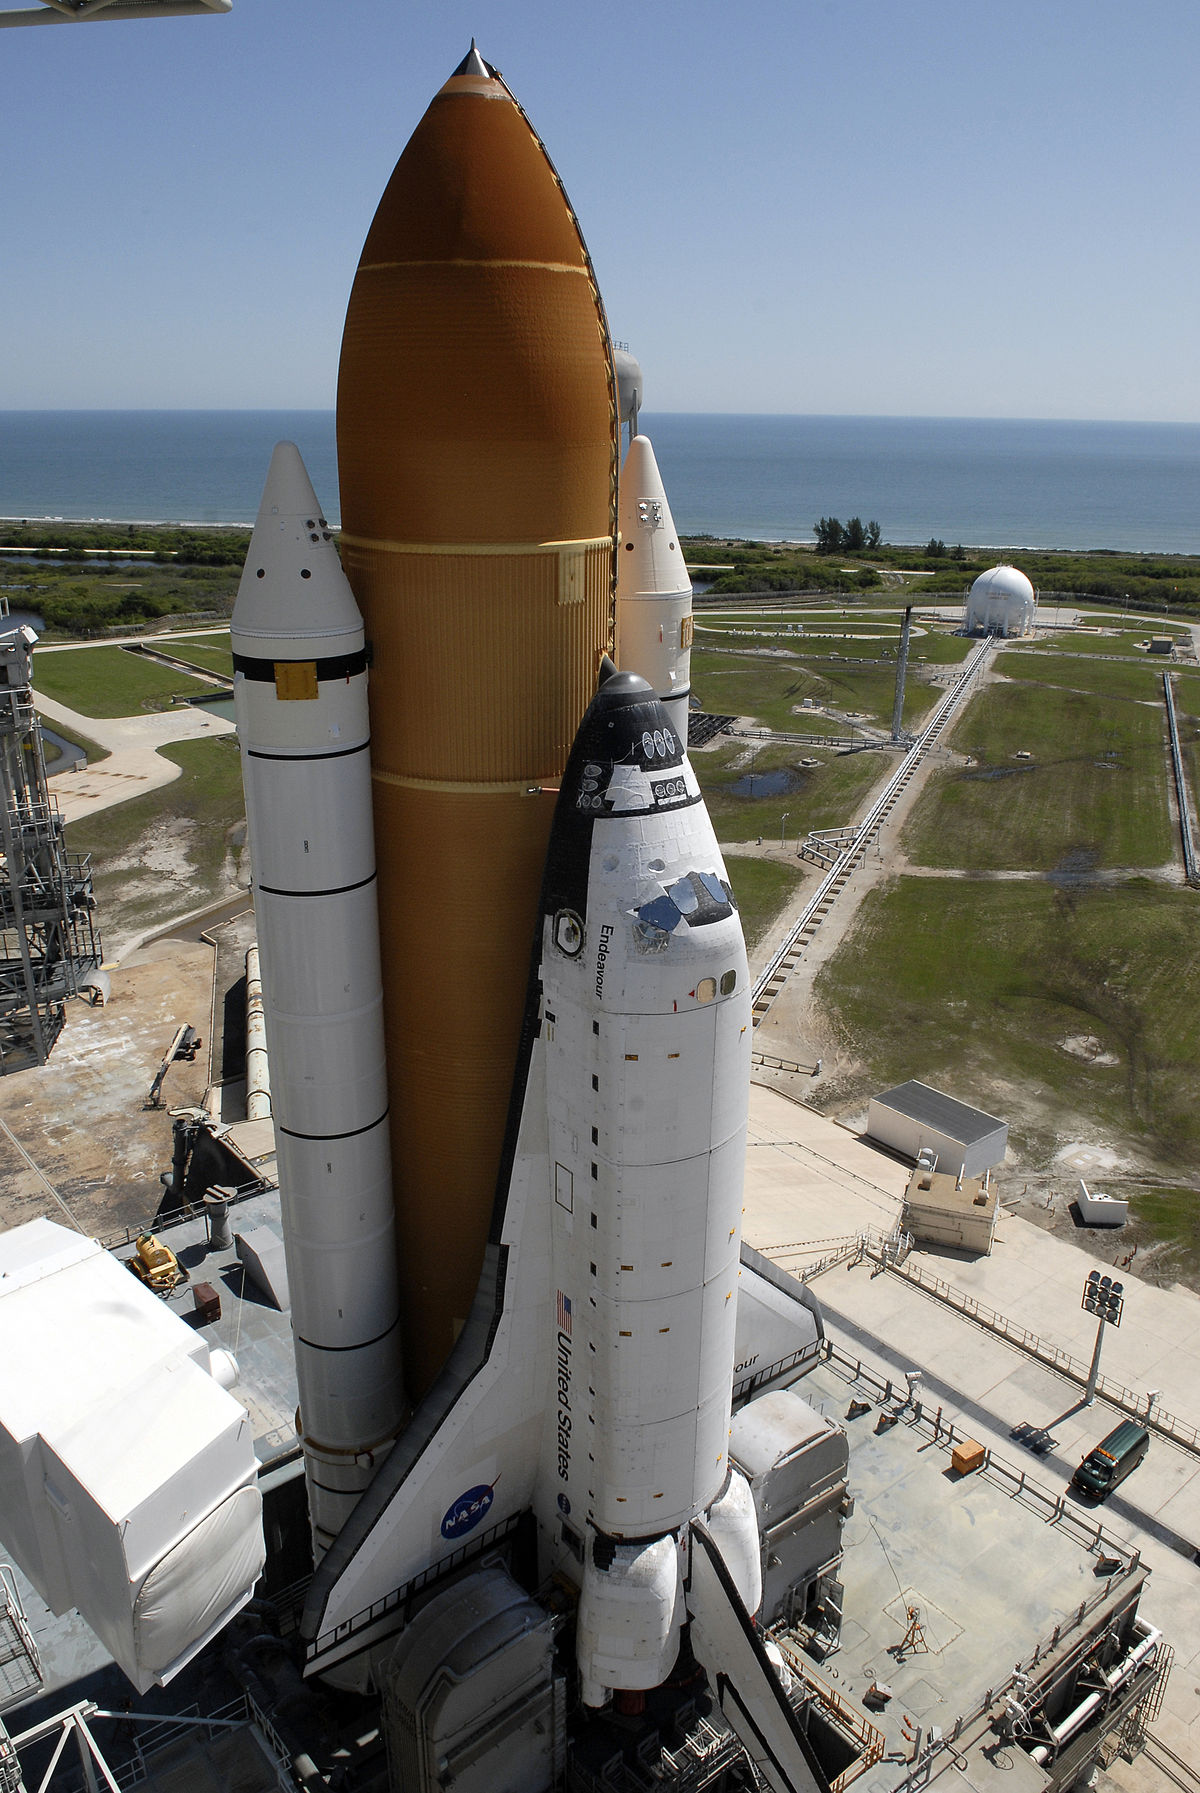 where is endeavour space shuttle right now - photo #11